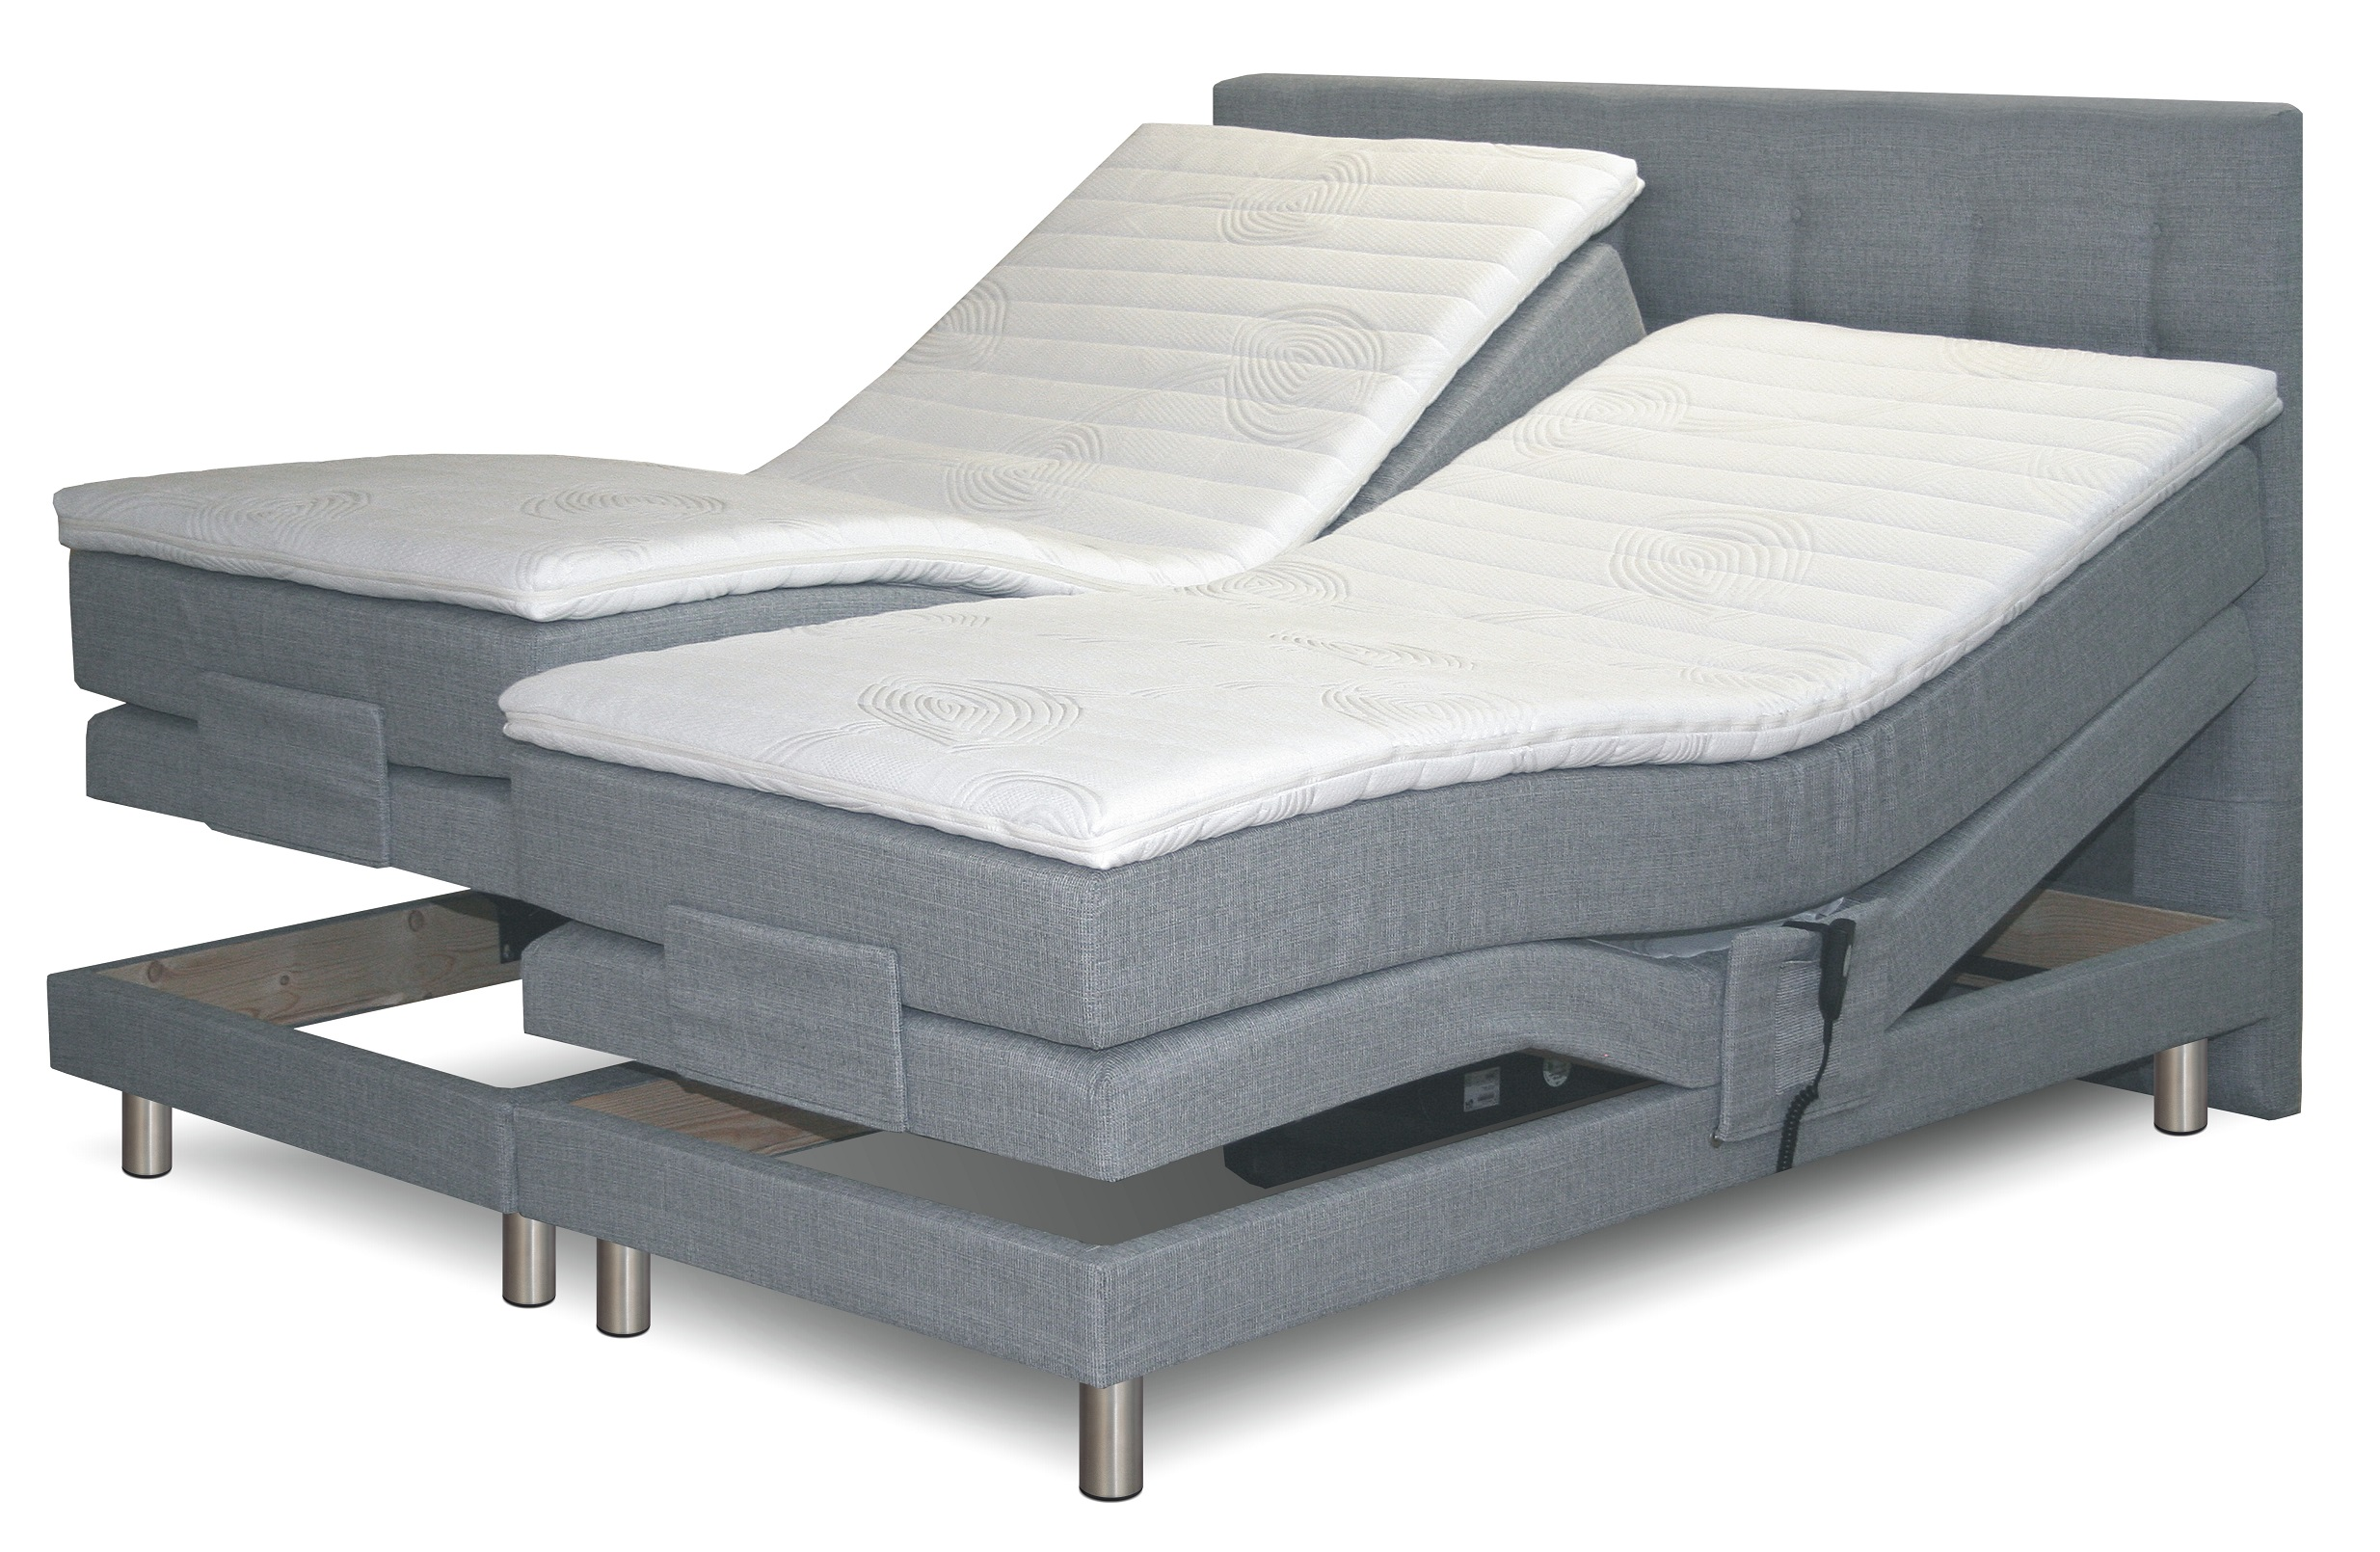 Hilda 2 BEDS ADJUSTABLE2